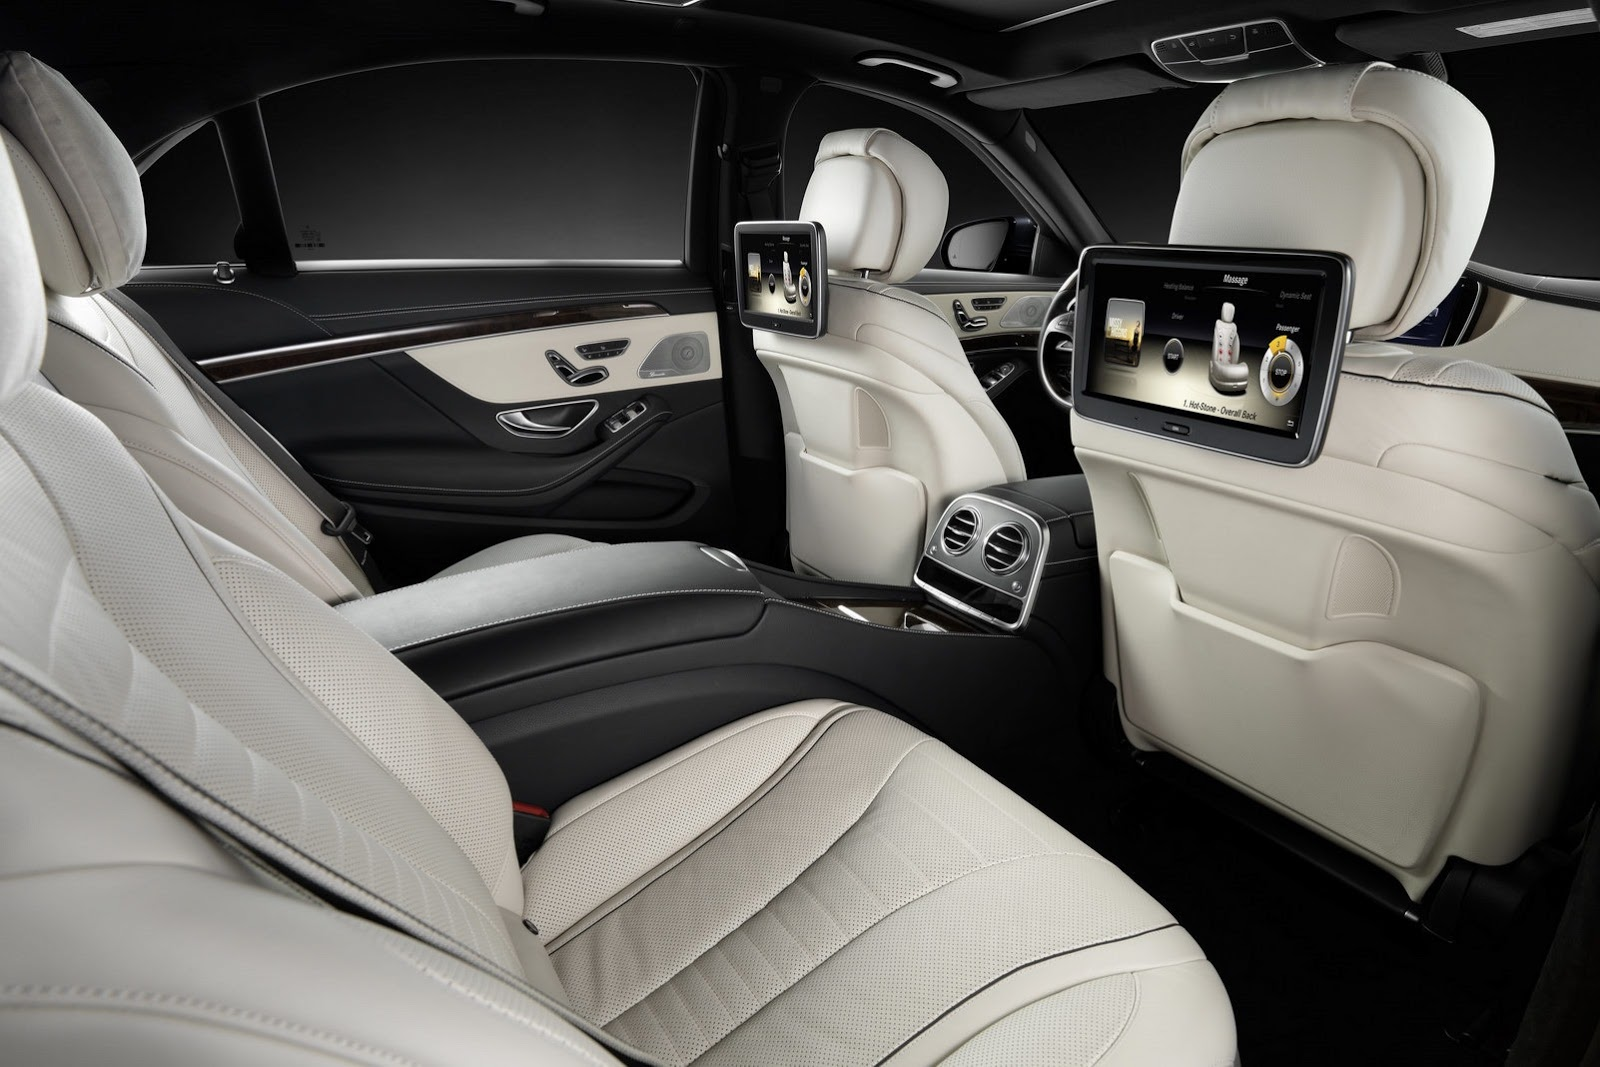 2014 Mercedes Benz S-Class - SMADE MEDIA (18)